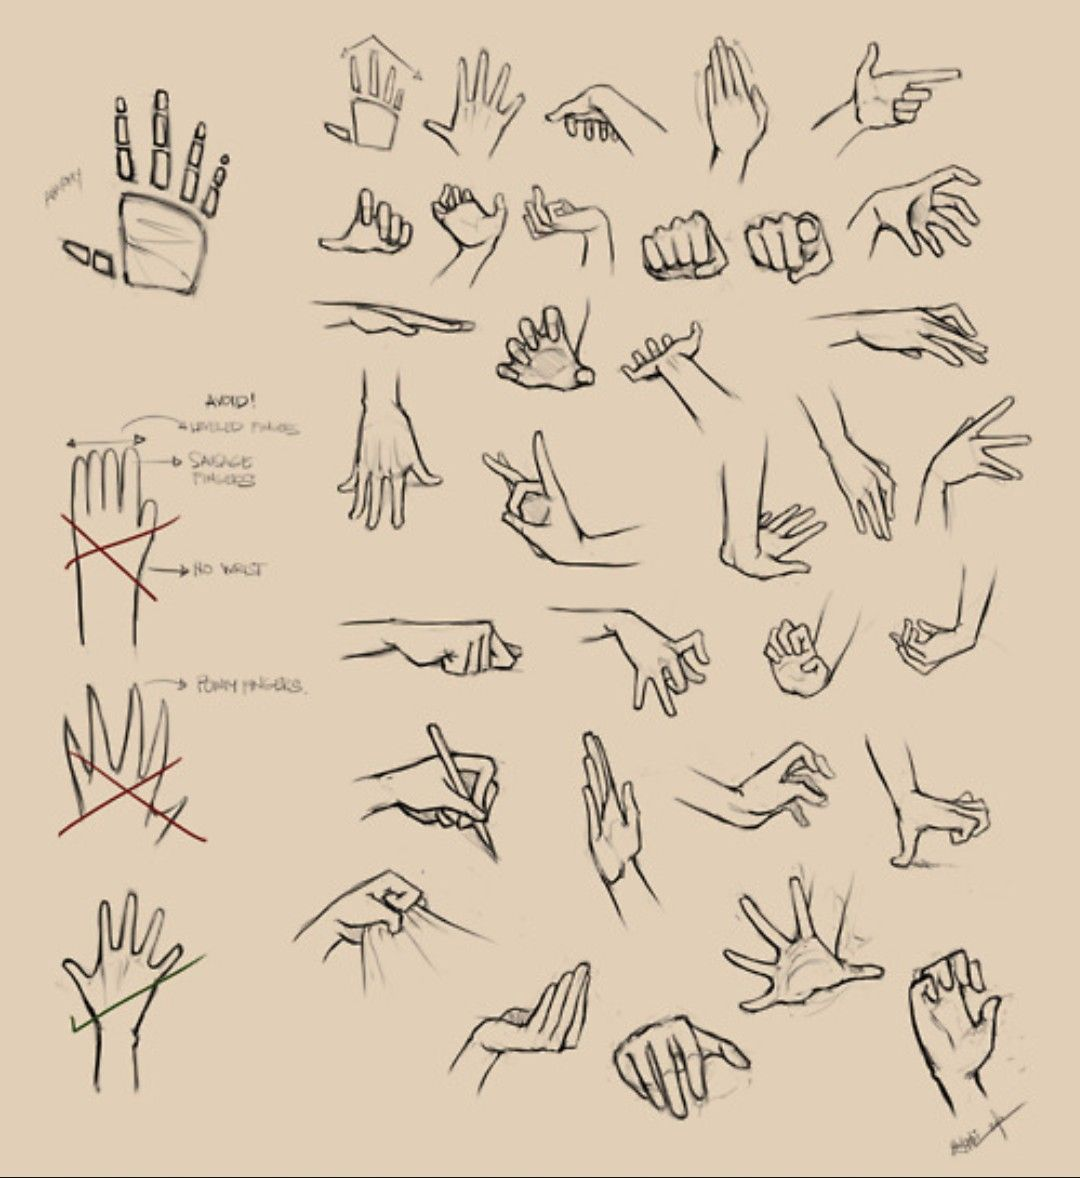 Citen Help Hand How To Draw Hand Hand Poses Anime Hand Draw Slap3 This Photo Not Mine Meow Sketches Drawings Art Reference